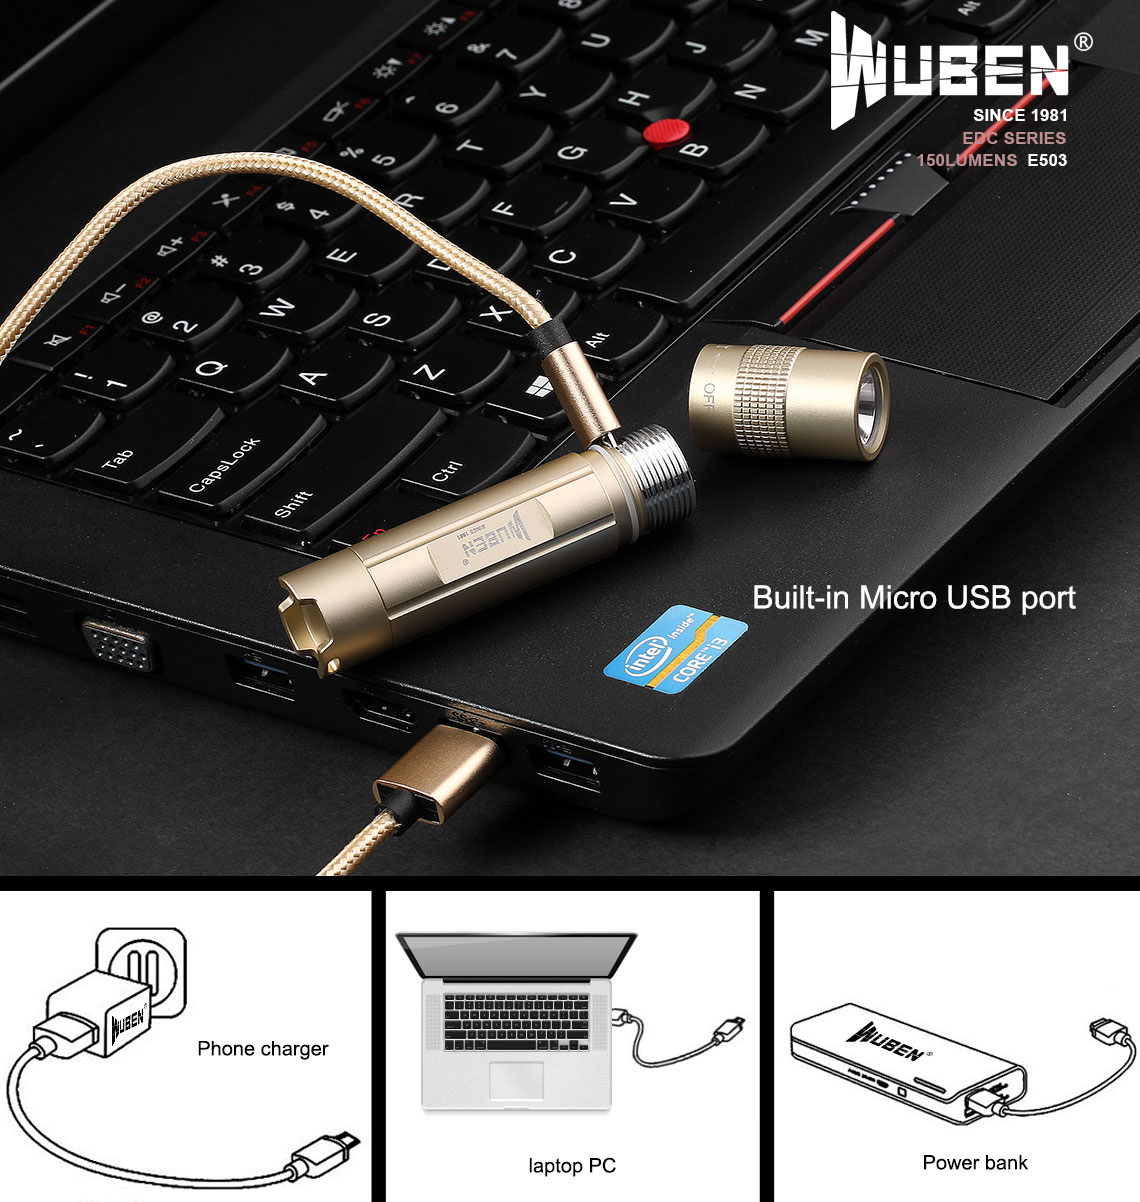 wuben e503 flashlight